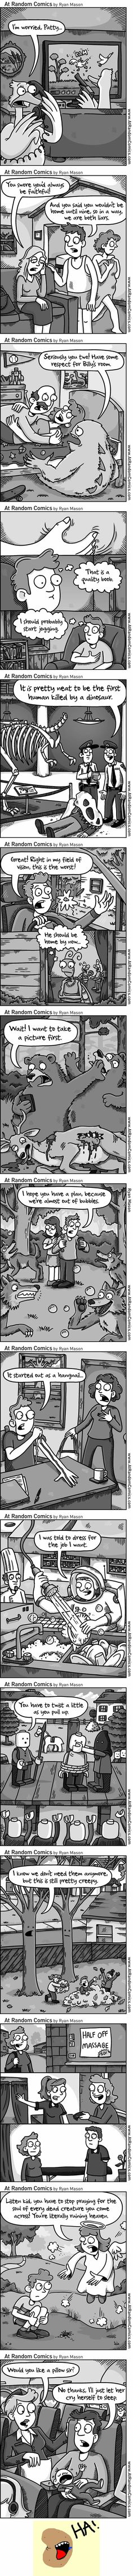 15+ Random Comics By Ryan Mason That Have Unexpected Twists